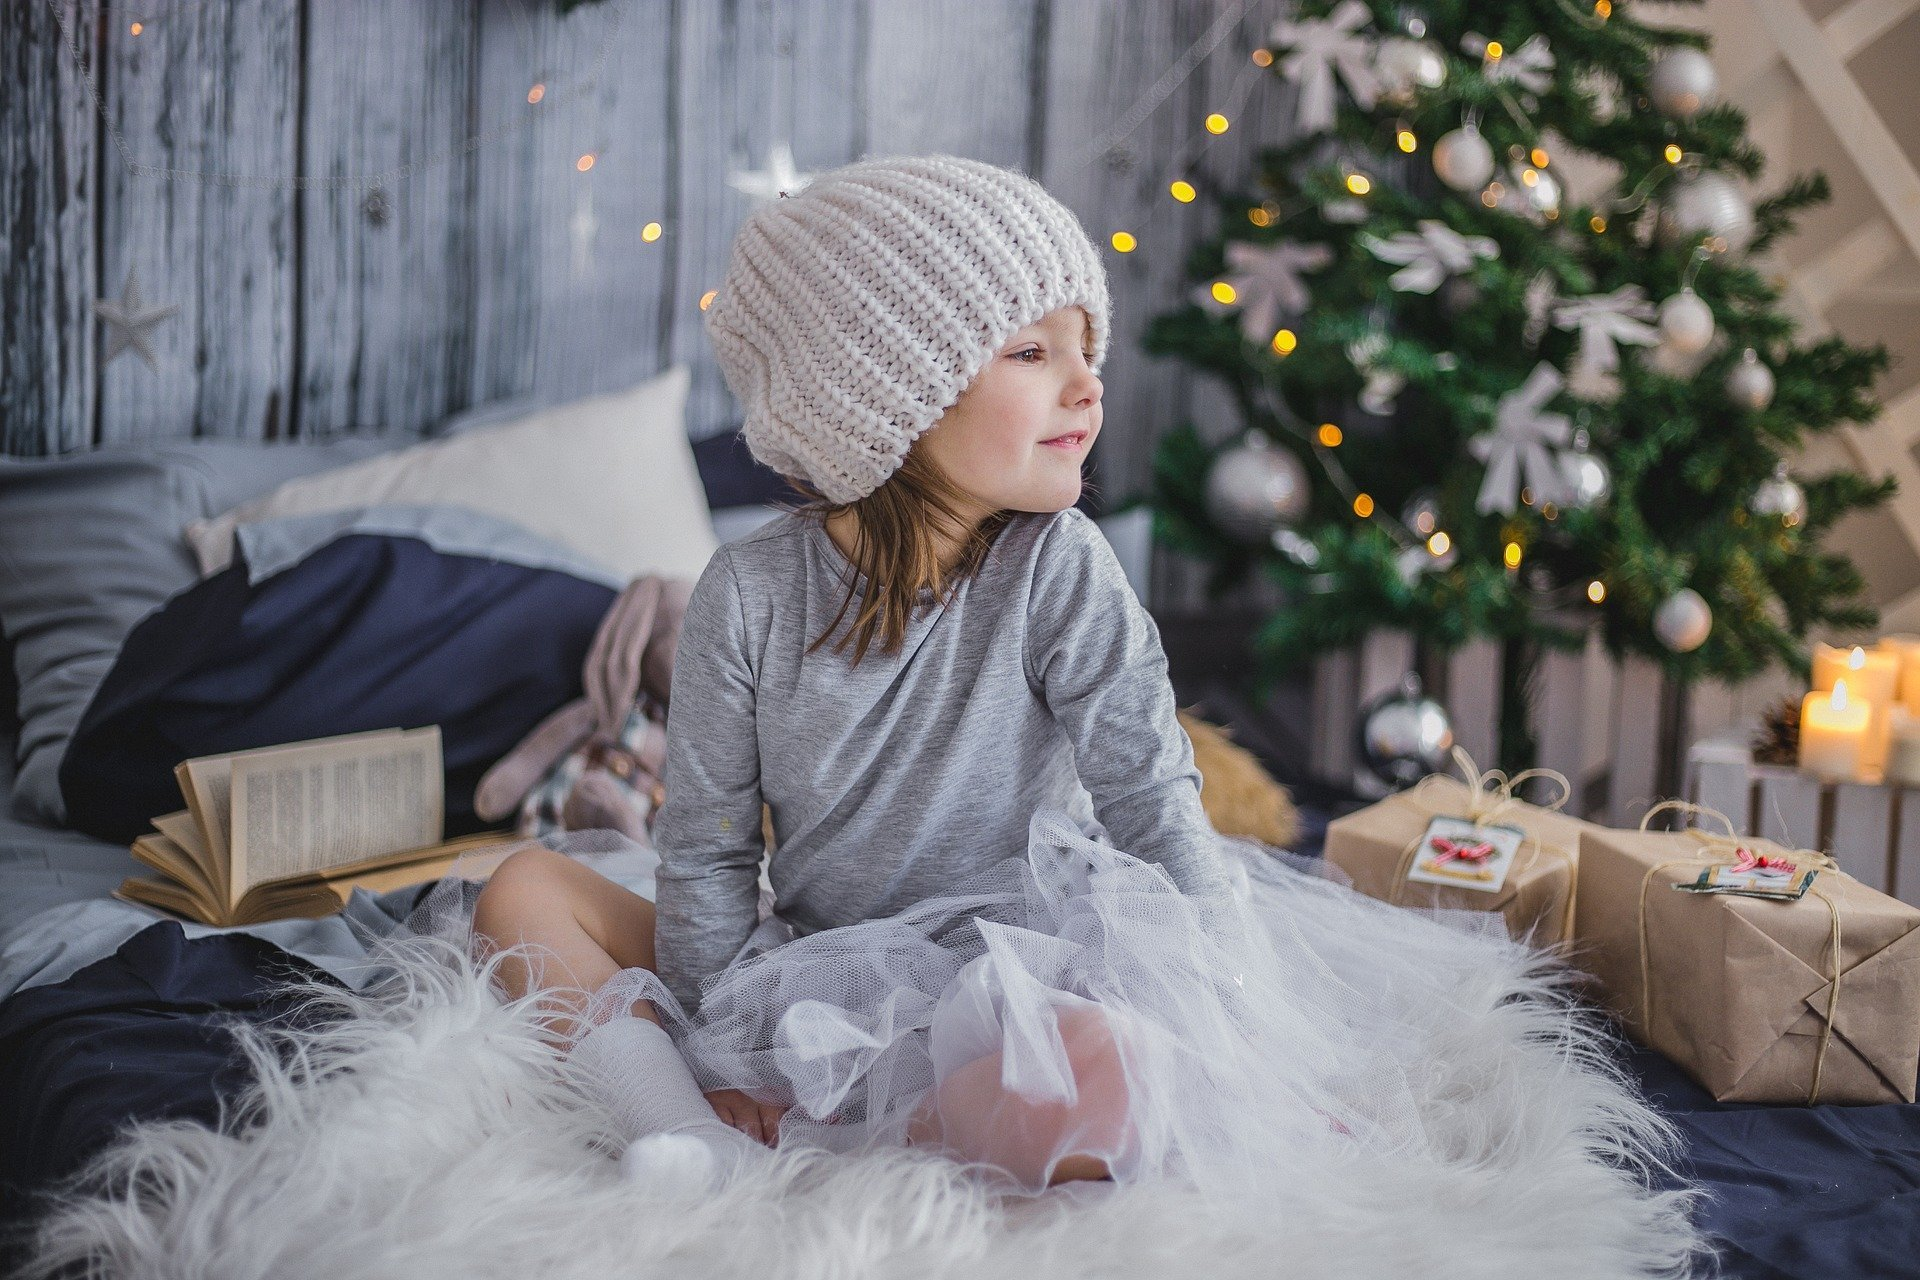 A girl surrounded by presents on Christmas morning.   Source: Pixabay.